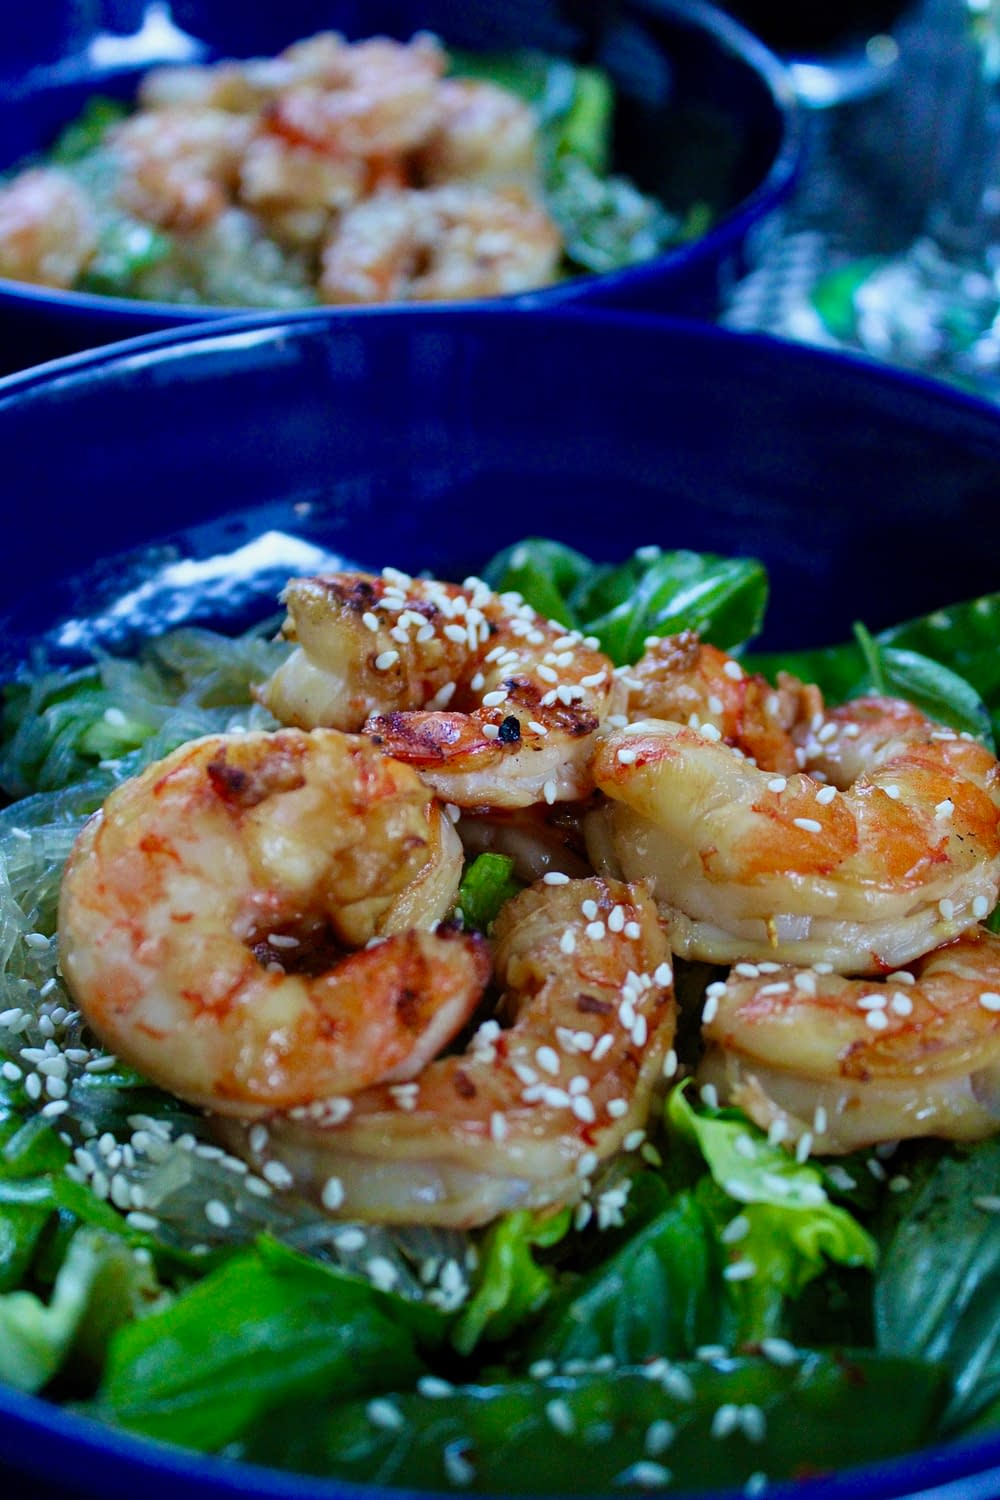 Spicy basil and grilled shrimp.